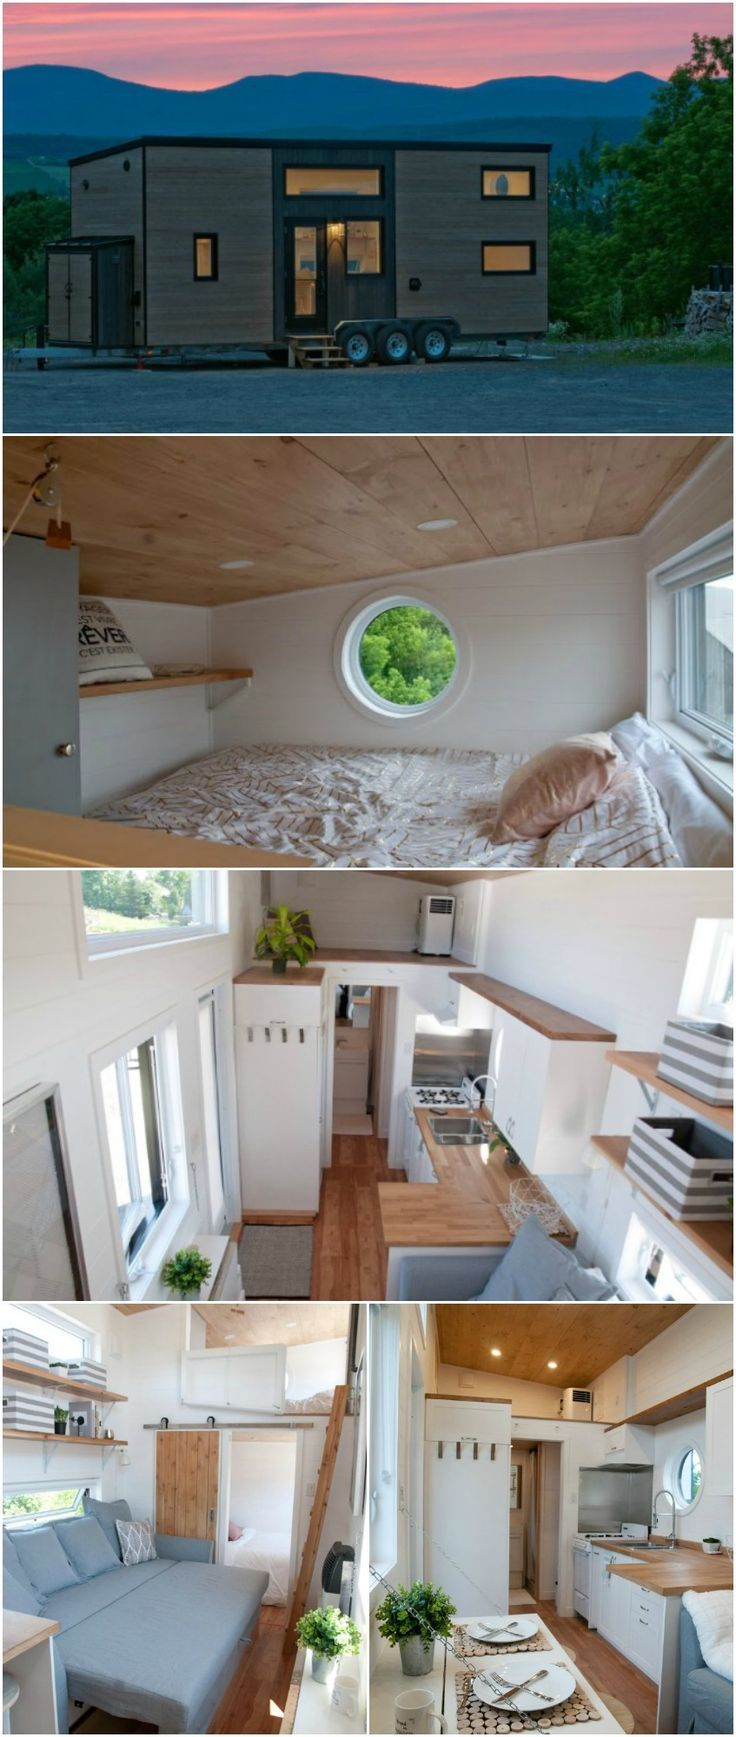 The Modern and Spacious Acacia Tiny House by Minimaliste